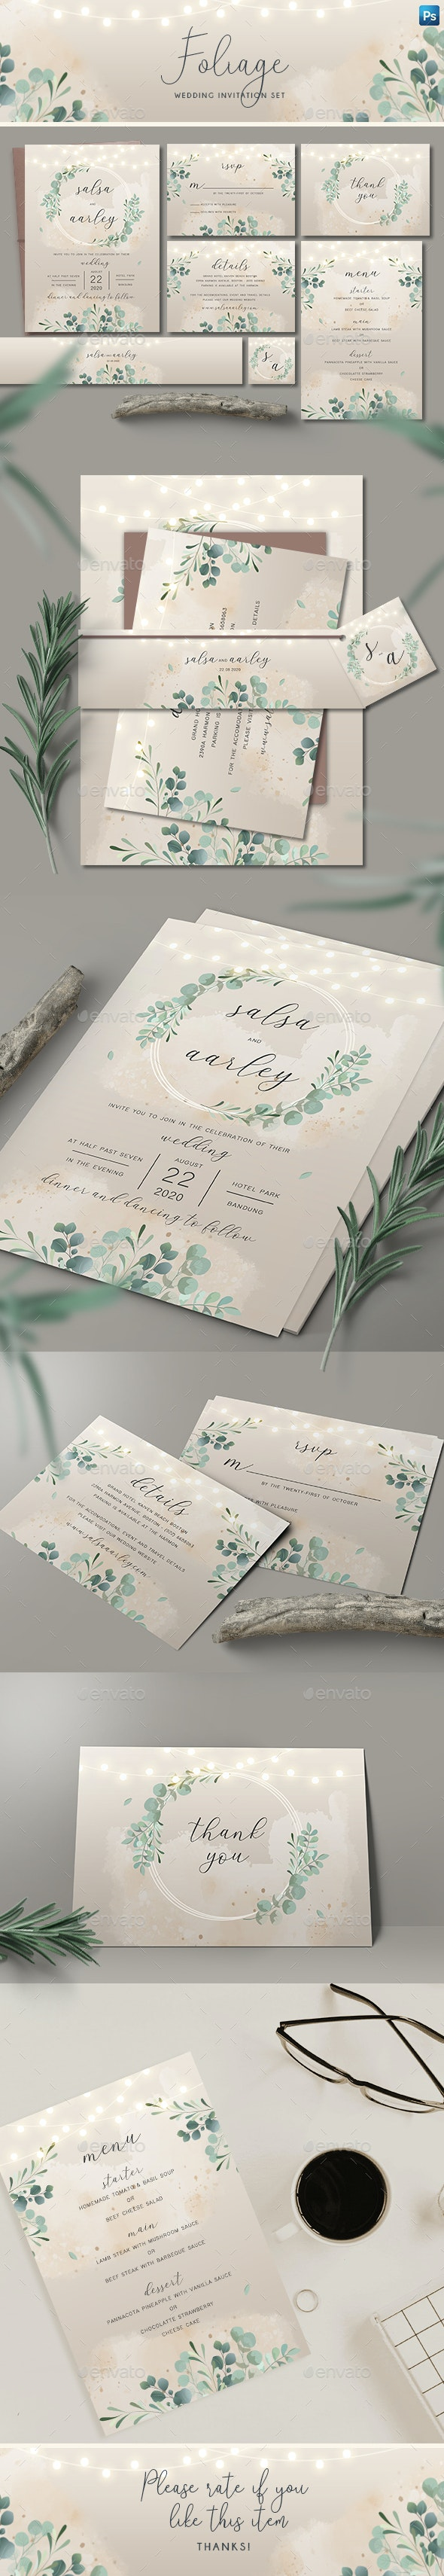 Foliage Wedding Invitation Set - Weddings Cards & Invites